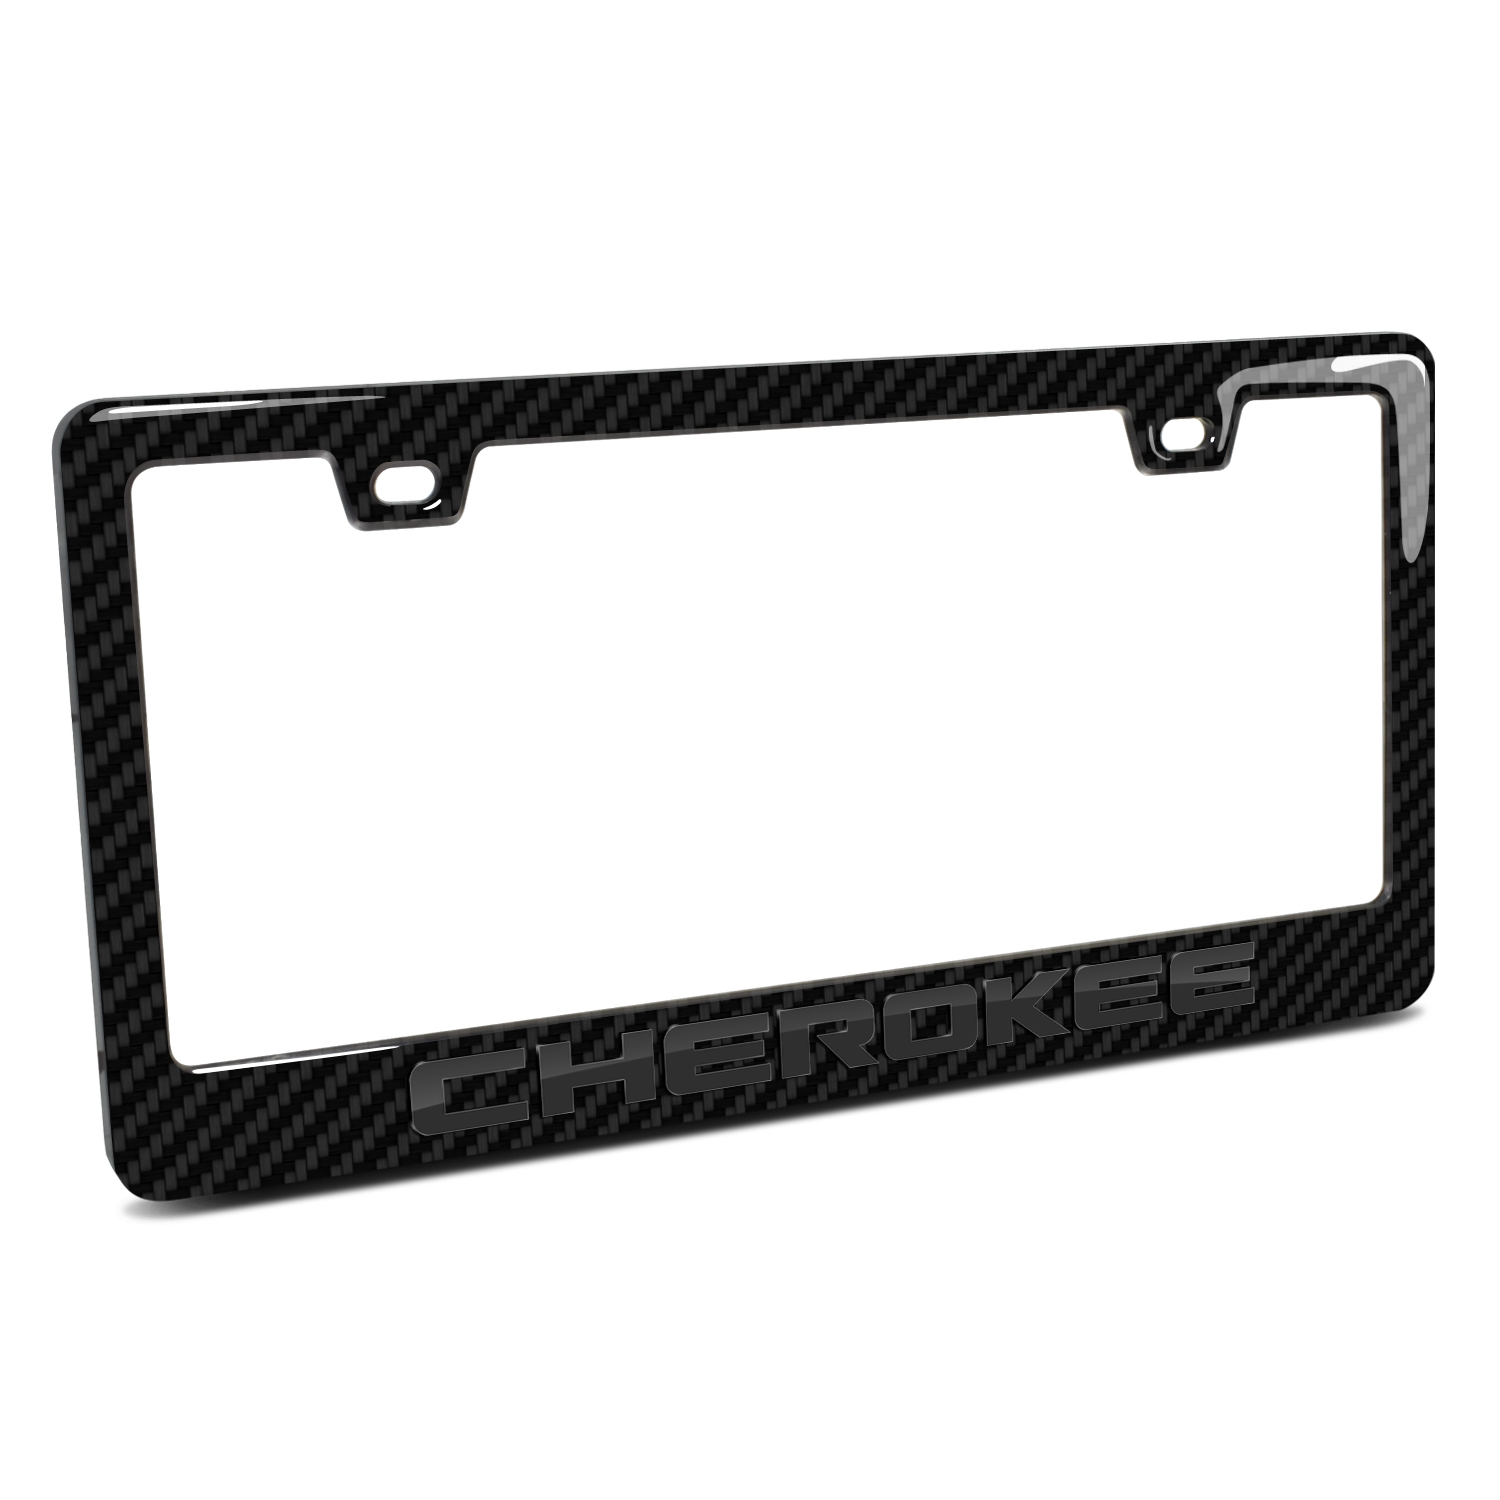 Jeep Cherokee in 3D Black on Black Real 3K Carbon Fiber Finish ABS Plastic License Plate Frame